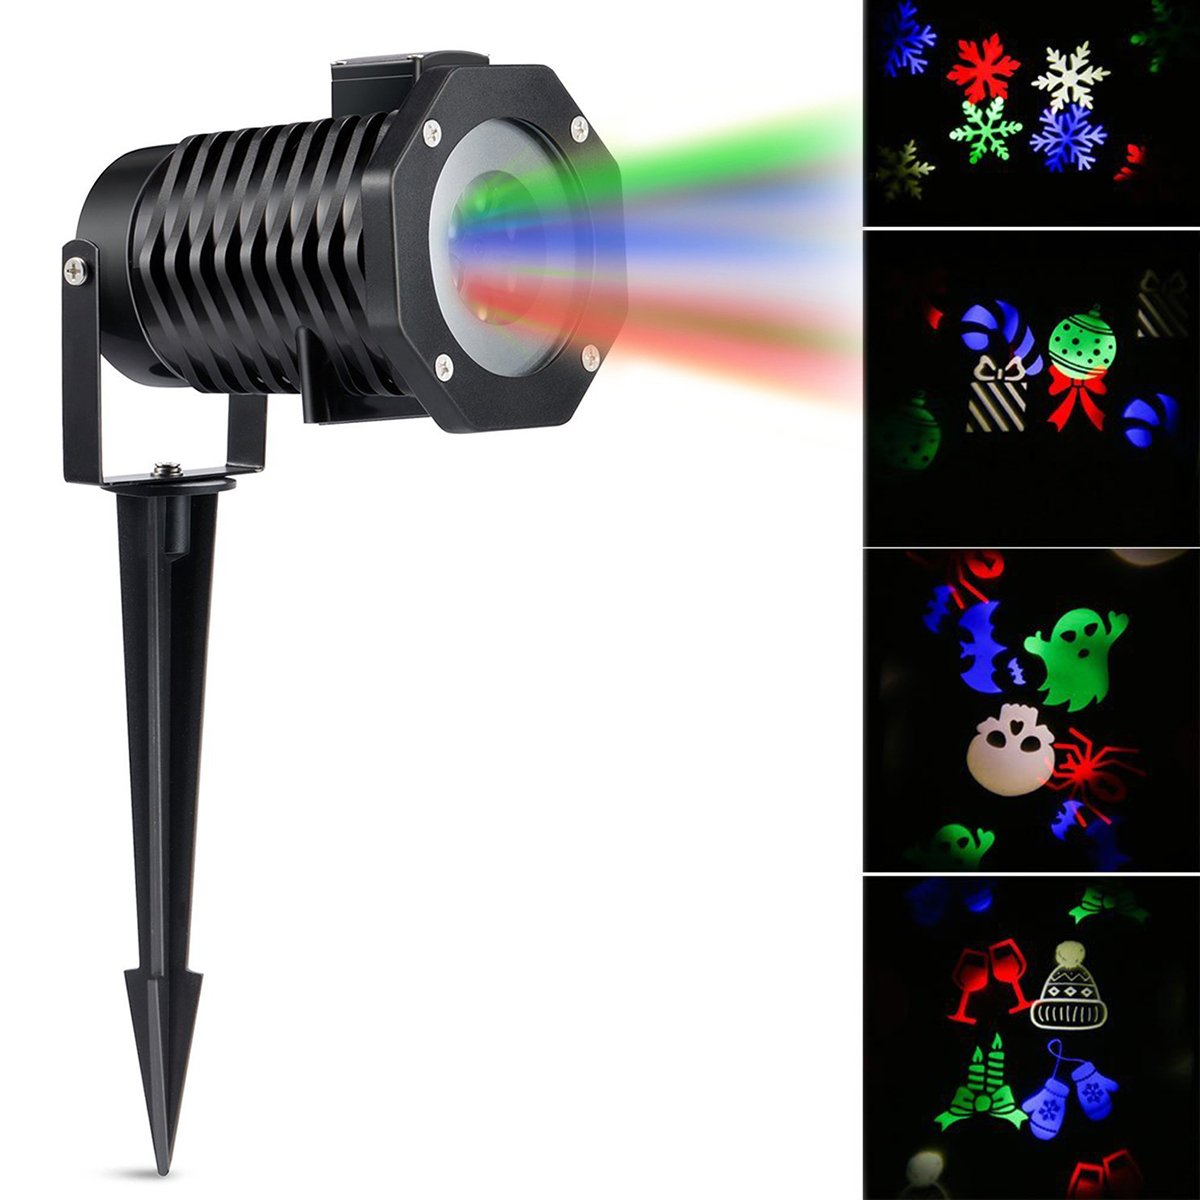 LED Projector Light, ONEVER Led Projection Lamp with Spike Outdoor Landscape Light with 10 Gobo Slides for New Year, Halloween Party and Holidays, US Plug (RGBW)